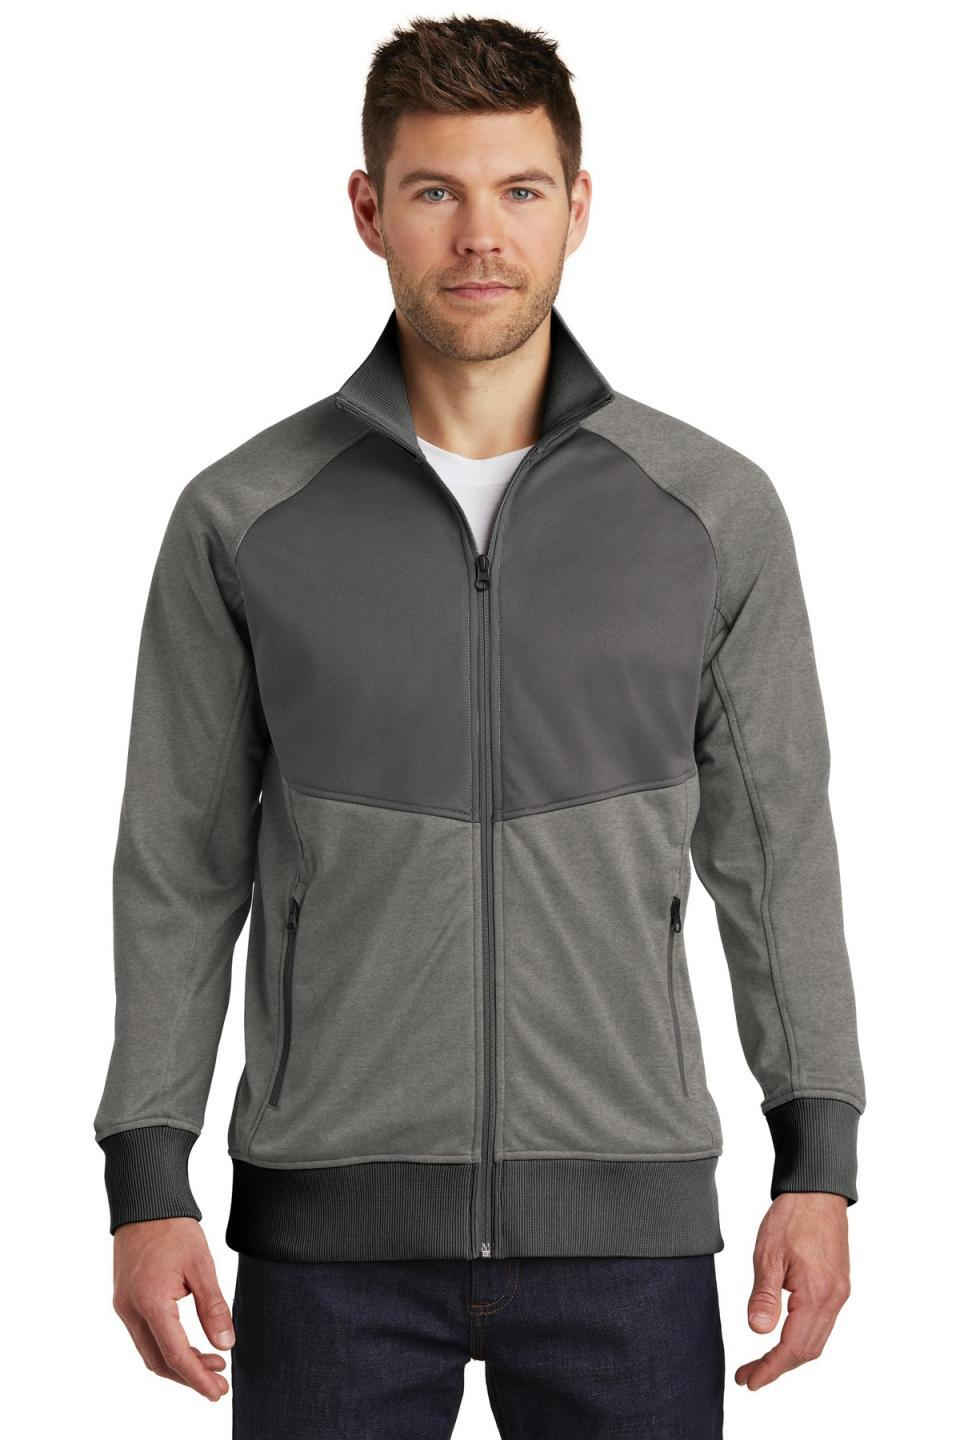 The North Face Men's Tech Full-Zip Fleece Jacket